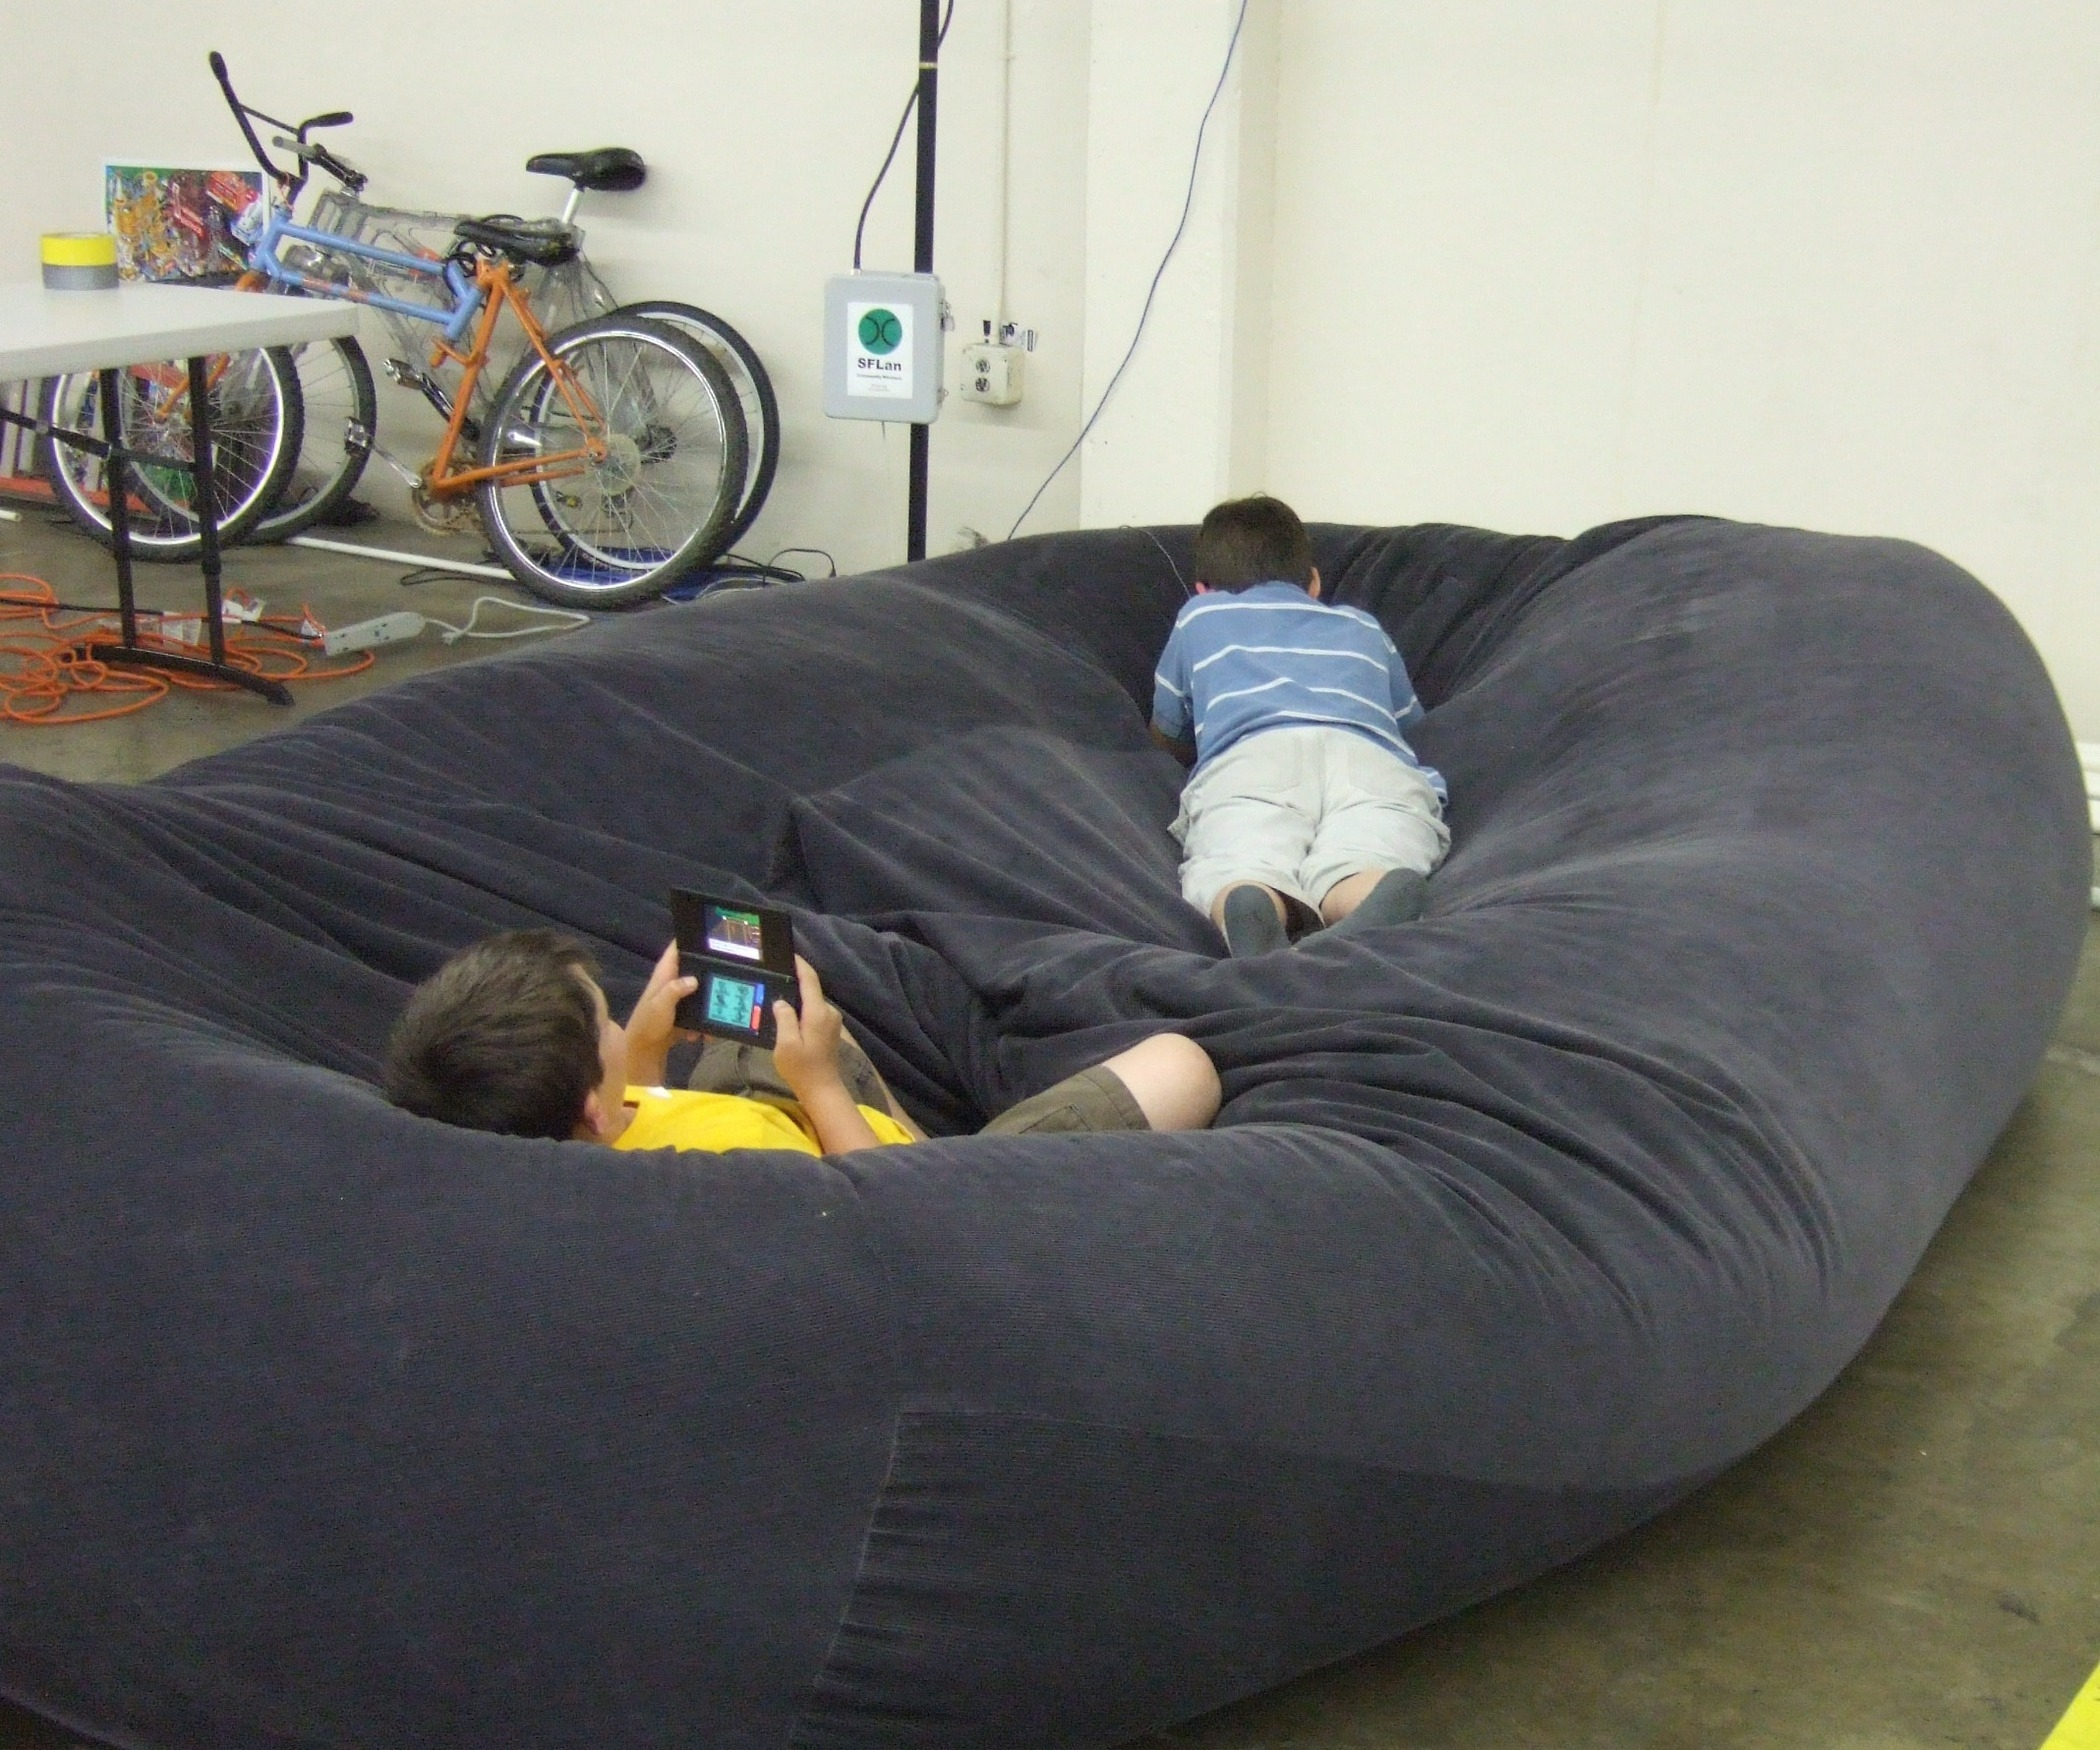 Bean Bag Sofa Bed Huge Bean Bag Chair Adoragemd Throughout Bean Bag Sofa Chairs (Image 3 of 15)